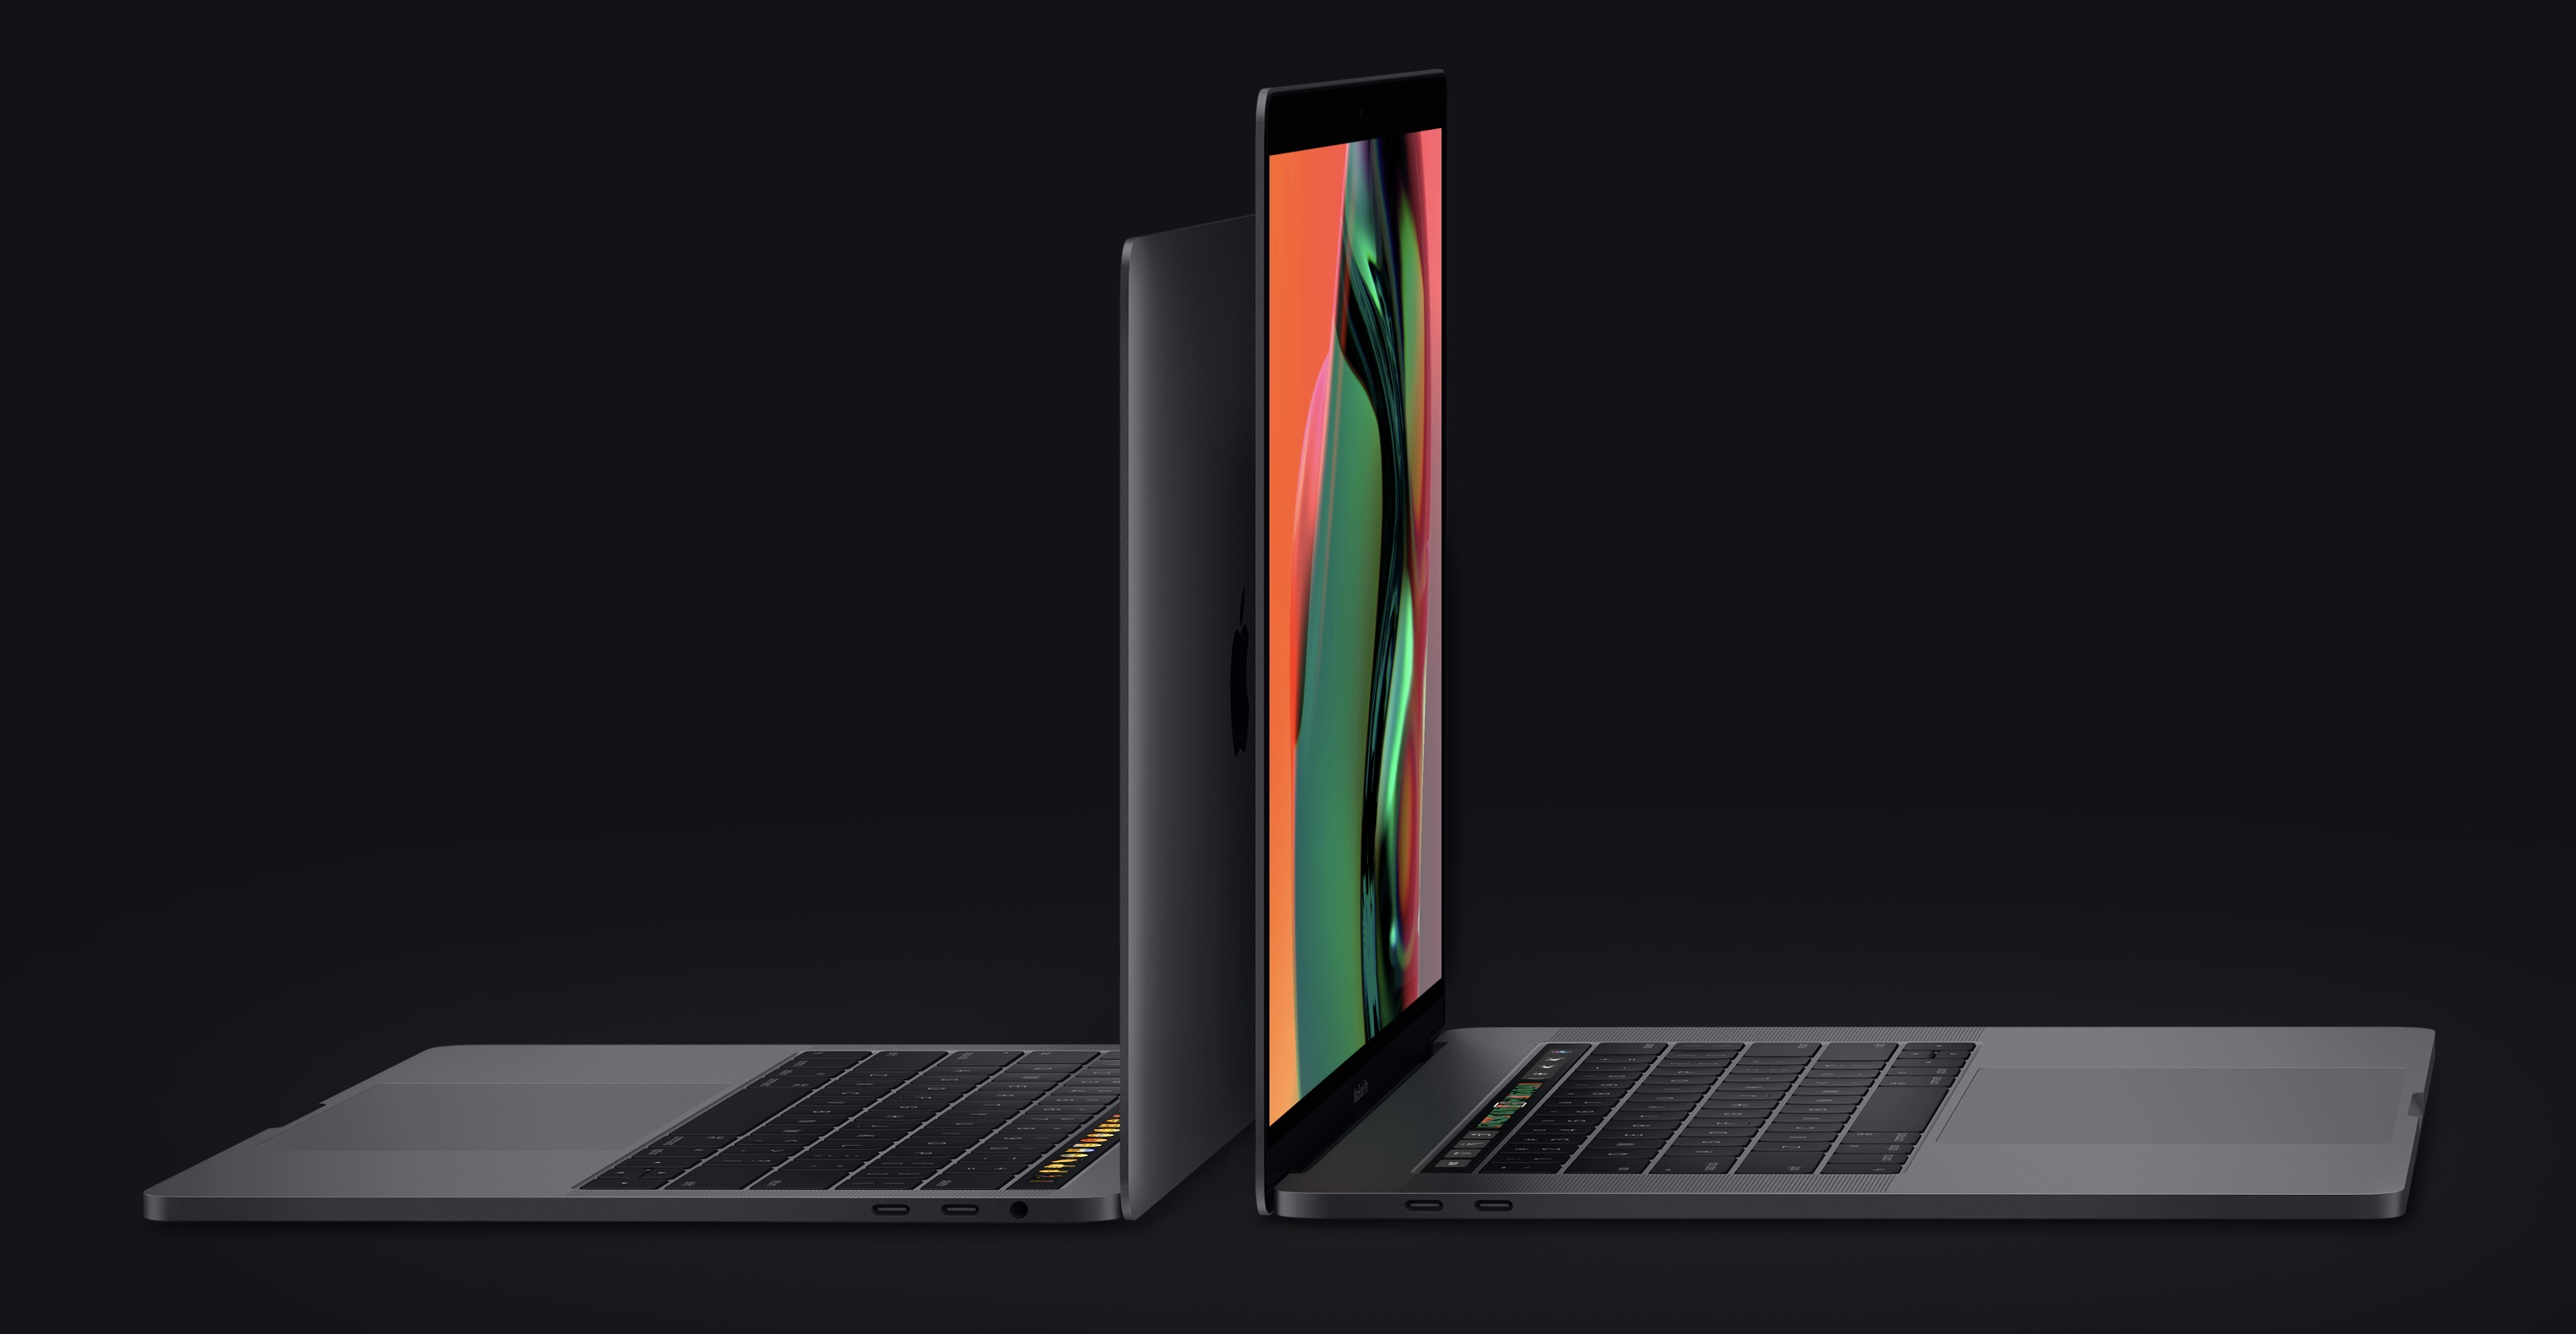 MacBook Pro notebooks back to back